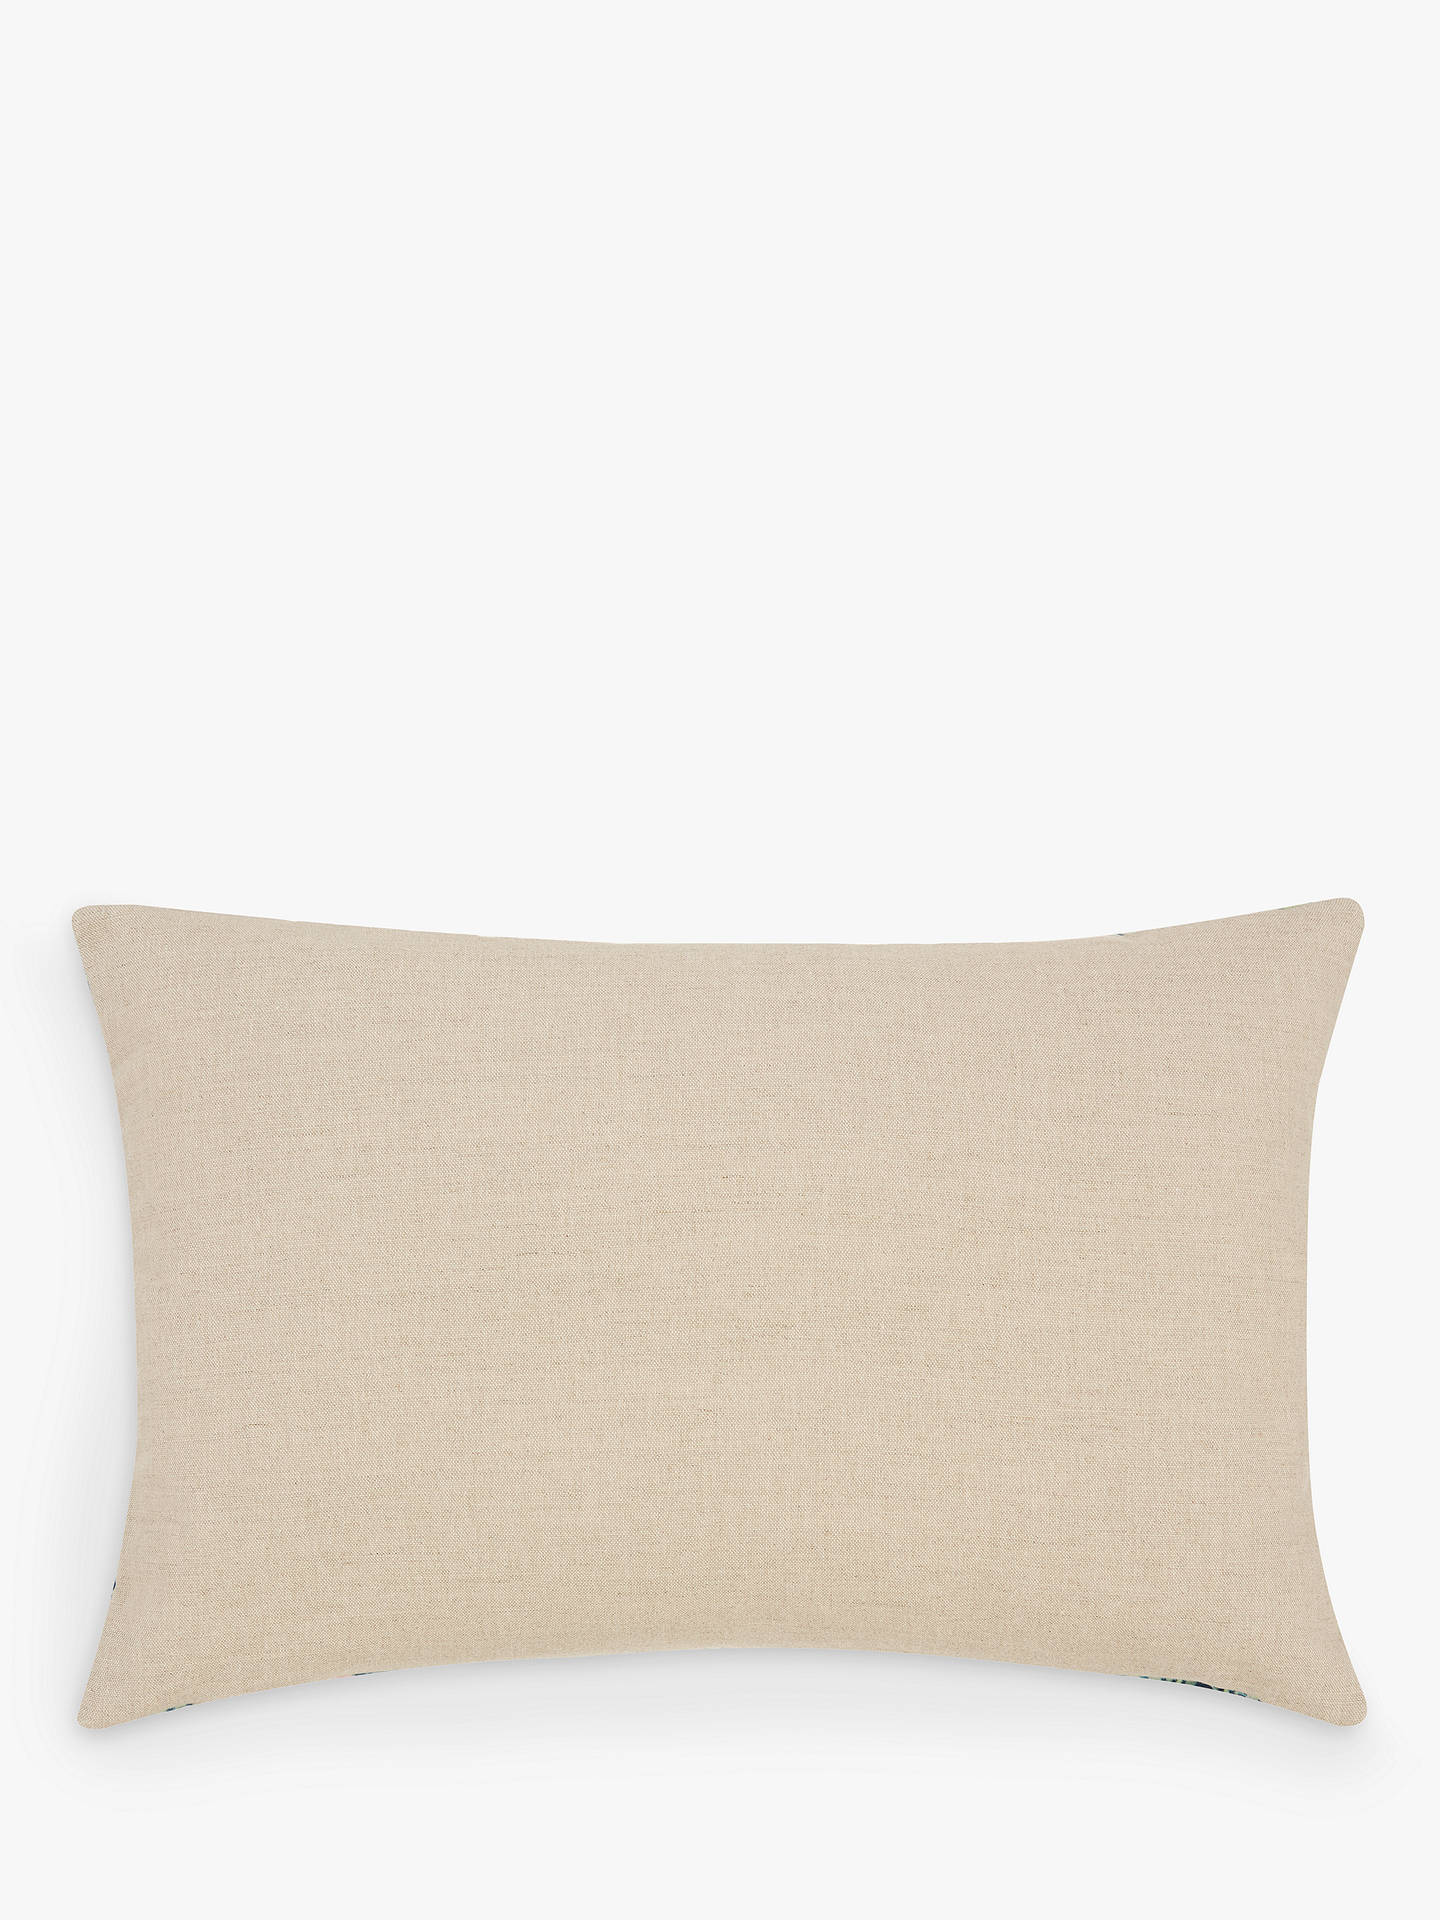 Buy Morris & Co. Strawberry Thief Velvet Cushion, Multi Online at johnlewis.com